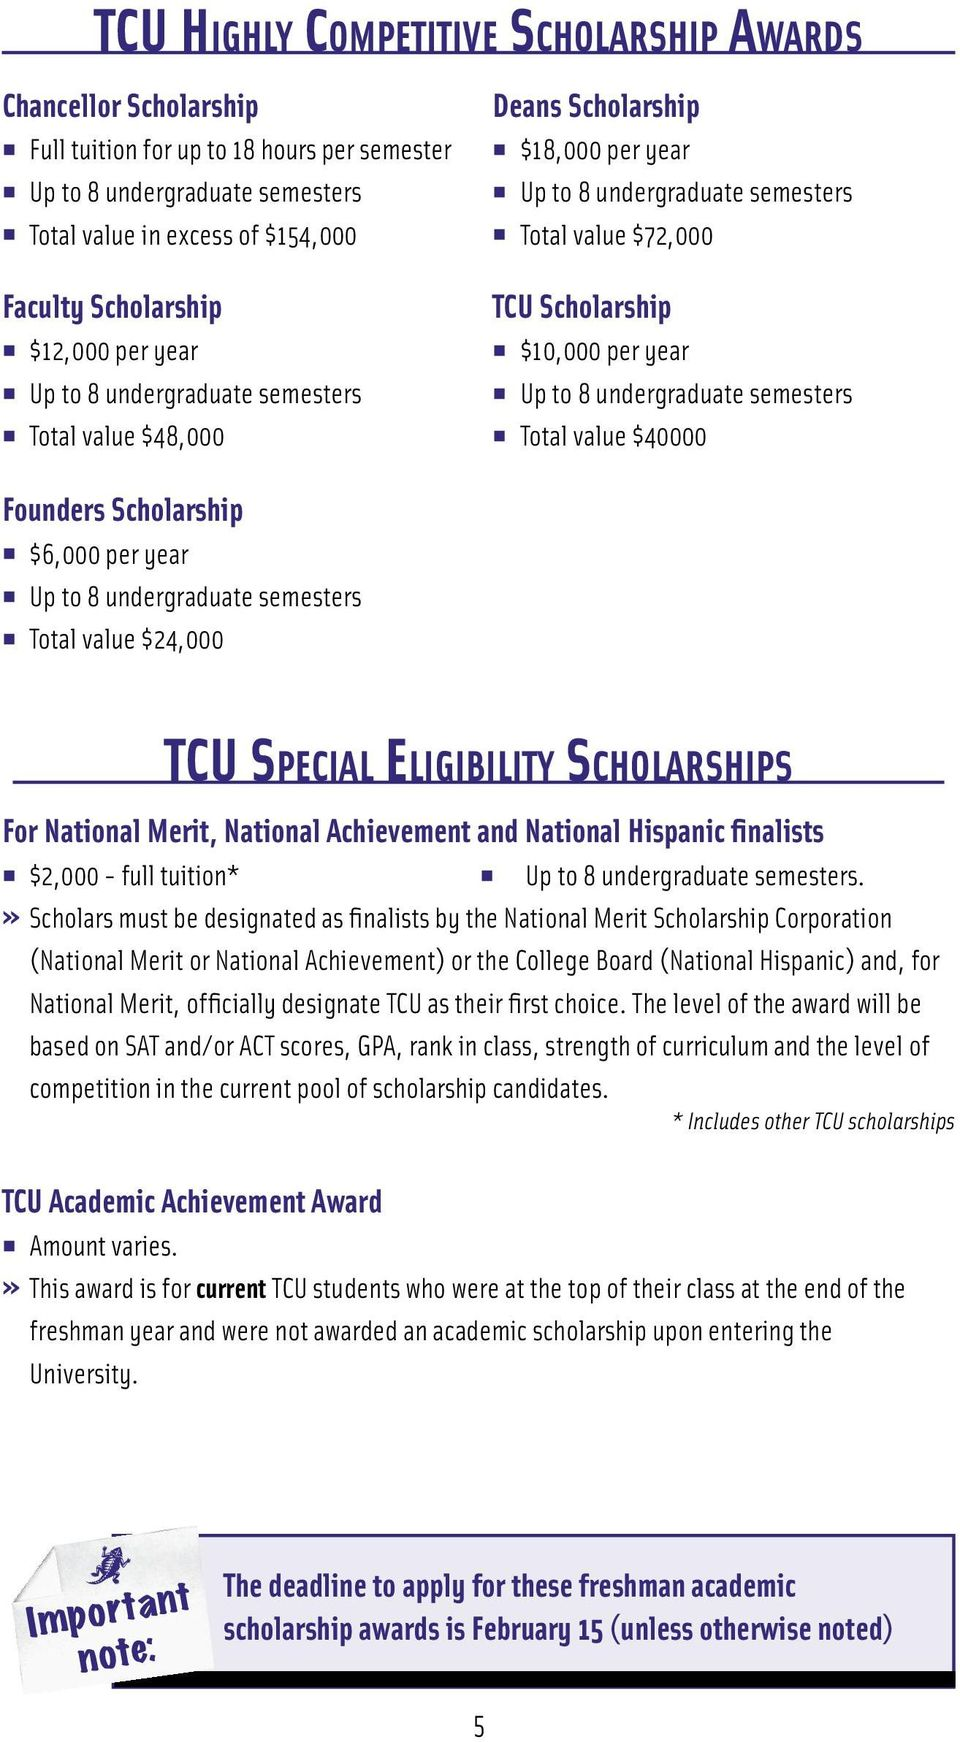 undergraduate semesters Total value $40000 Founders Scholarship $6,000 per year Up to 8 undergraduate semesters Total value $24,000 TCU Special Eligibility Scholarships For National Merit, National